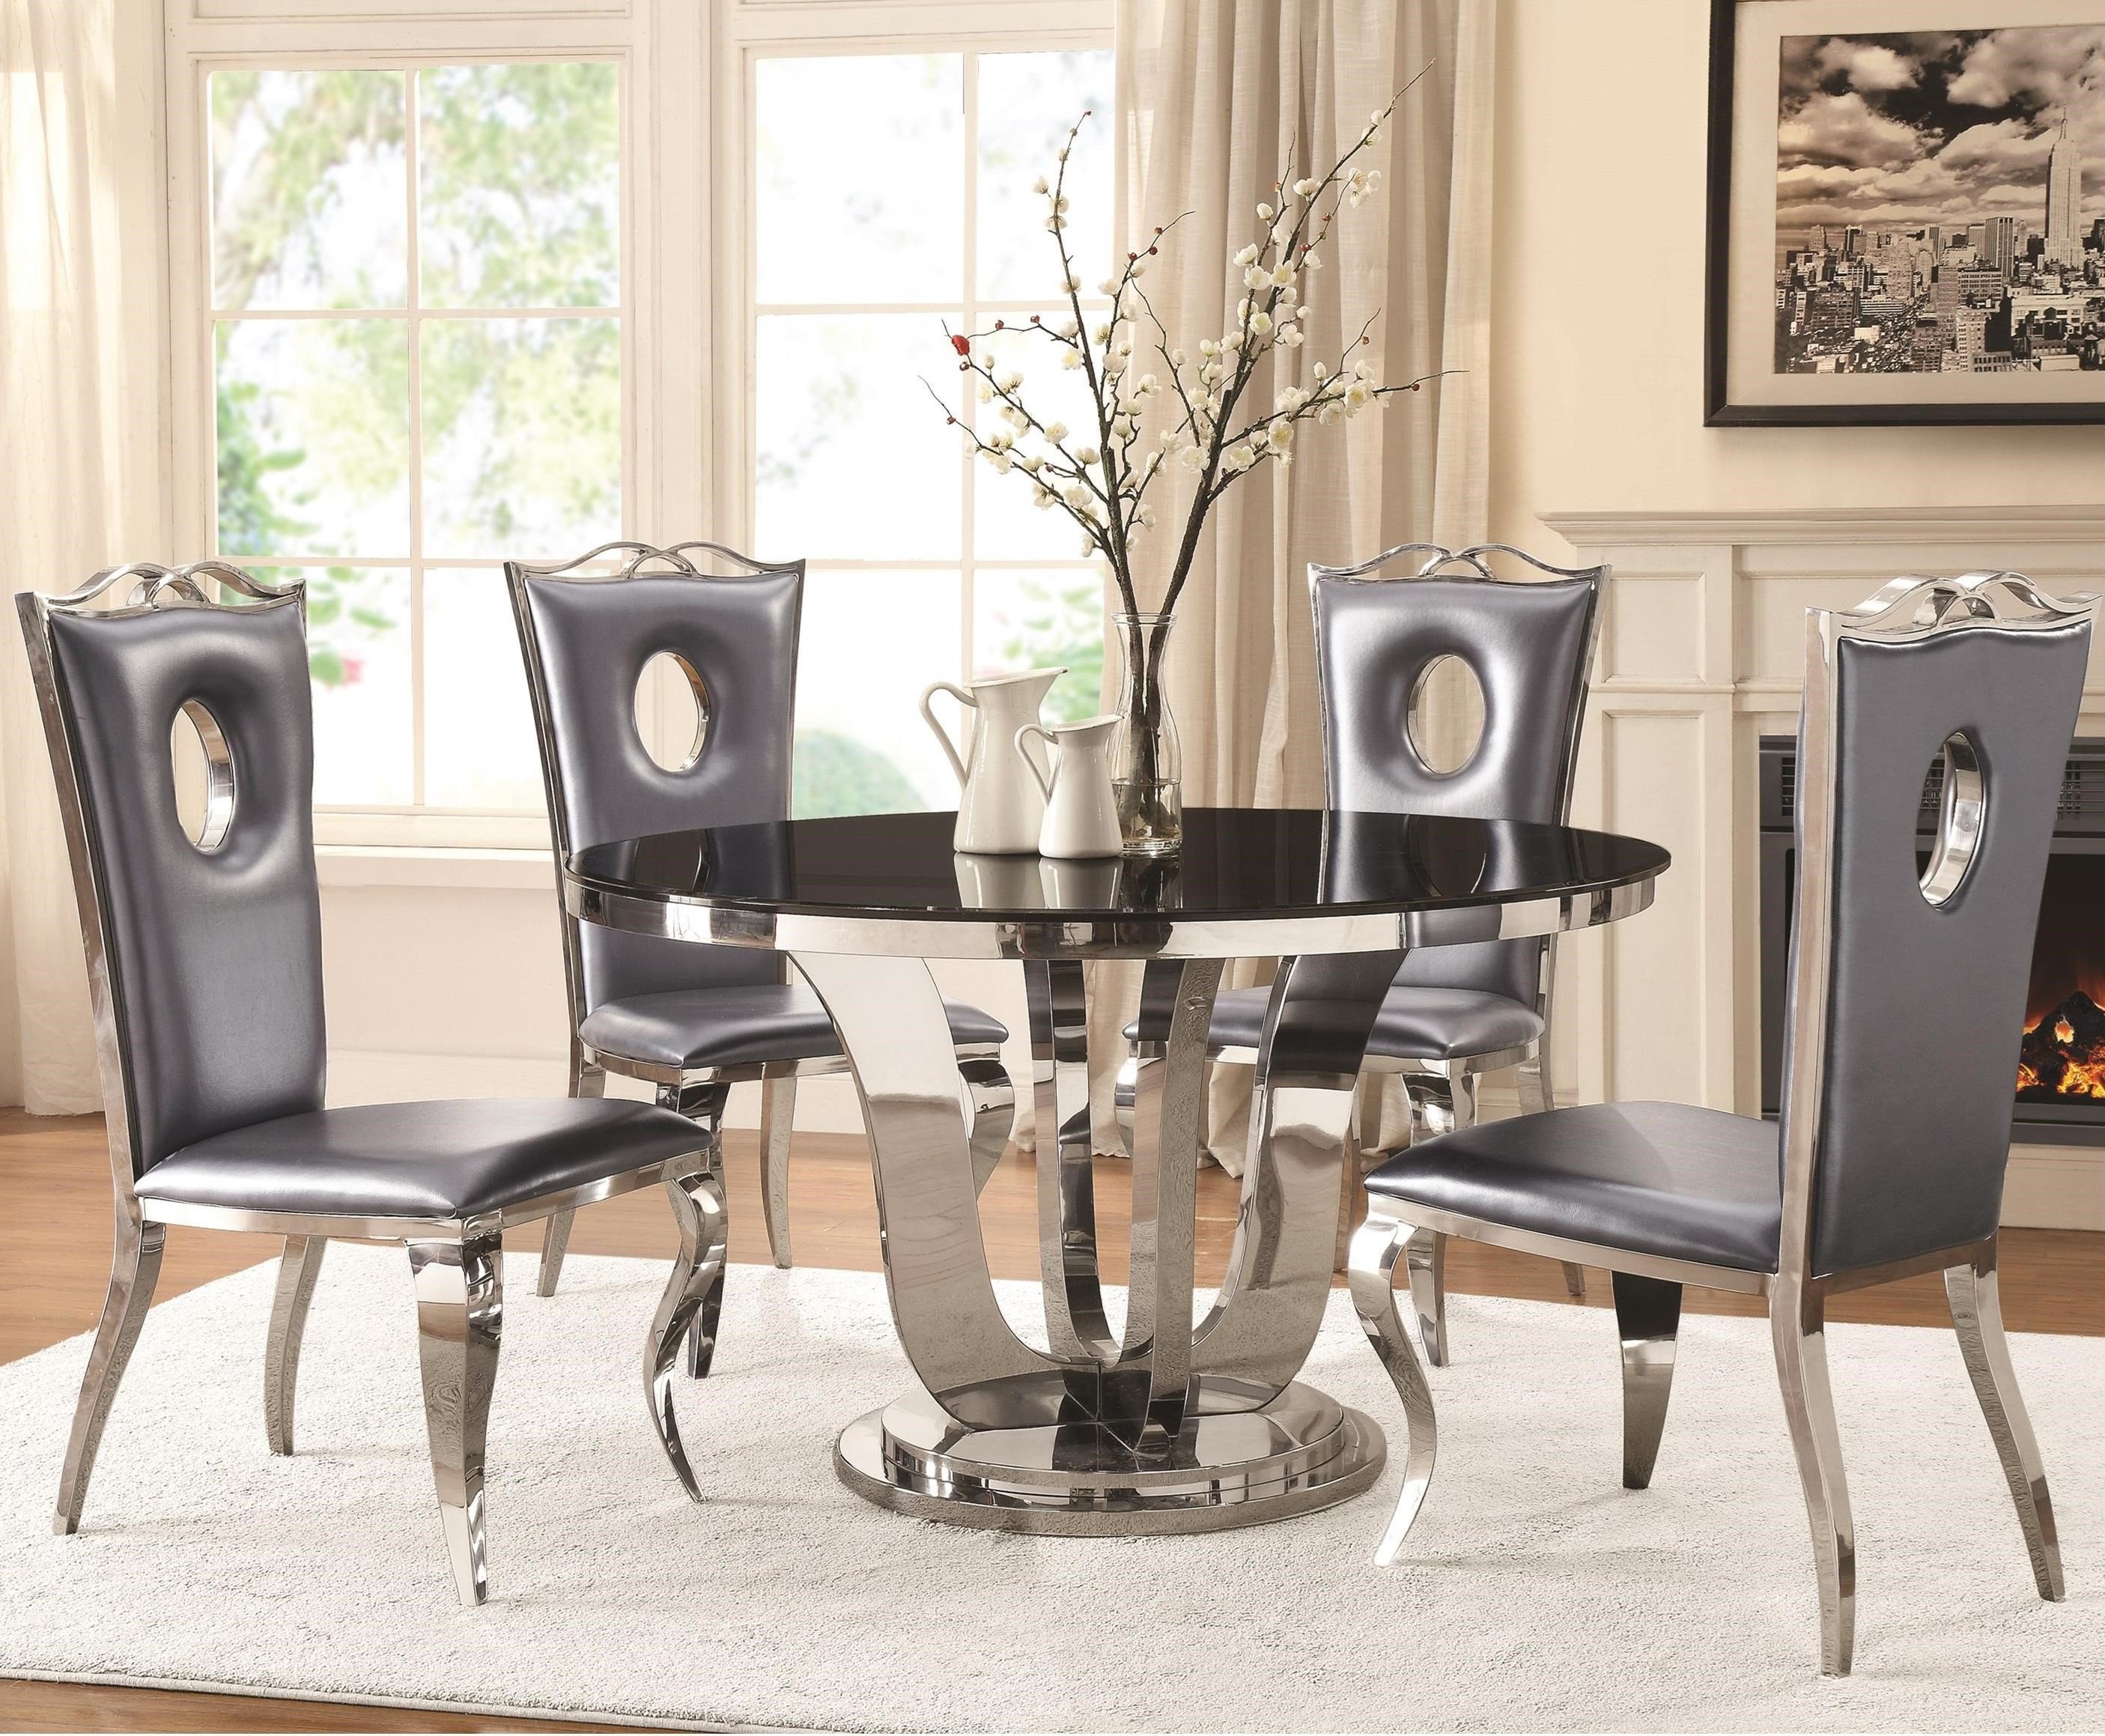 coaster blasio glam five piece dining set with round table